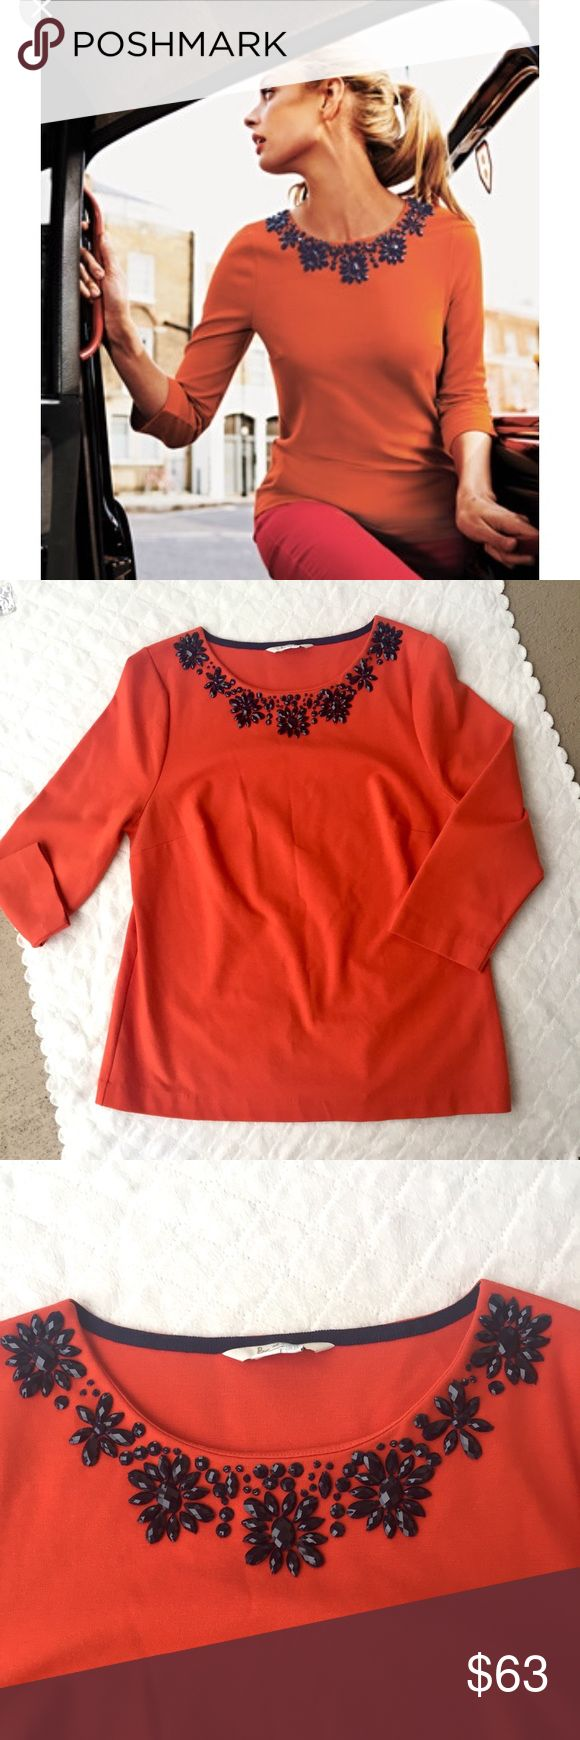 "10 / Boden orange embellished ponte top Orange long sleeve top w/ beautiful embellishments at the neckline. 🌟 32% cotton + 31% modal + 28% polyamide + 9% elastane. 3/4 length sleeves. Semi-fitted shape.   SIZE: 10 waist: 18.5"" sleeve length: 19"" length: 24.5""  ❌ no trades ✔️offers welcome! ❣️add to bundle for private offer! Boden Tops"